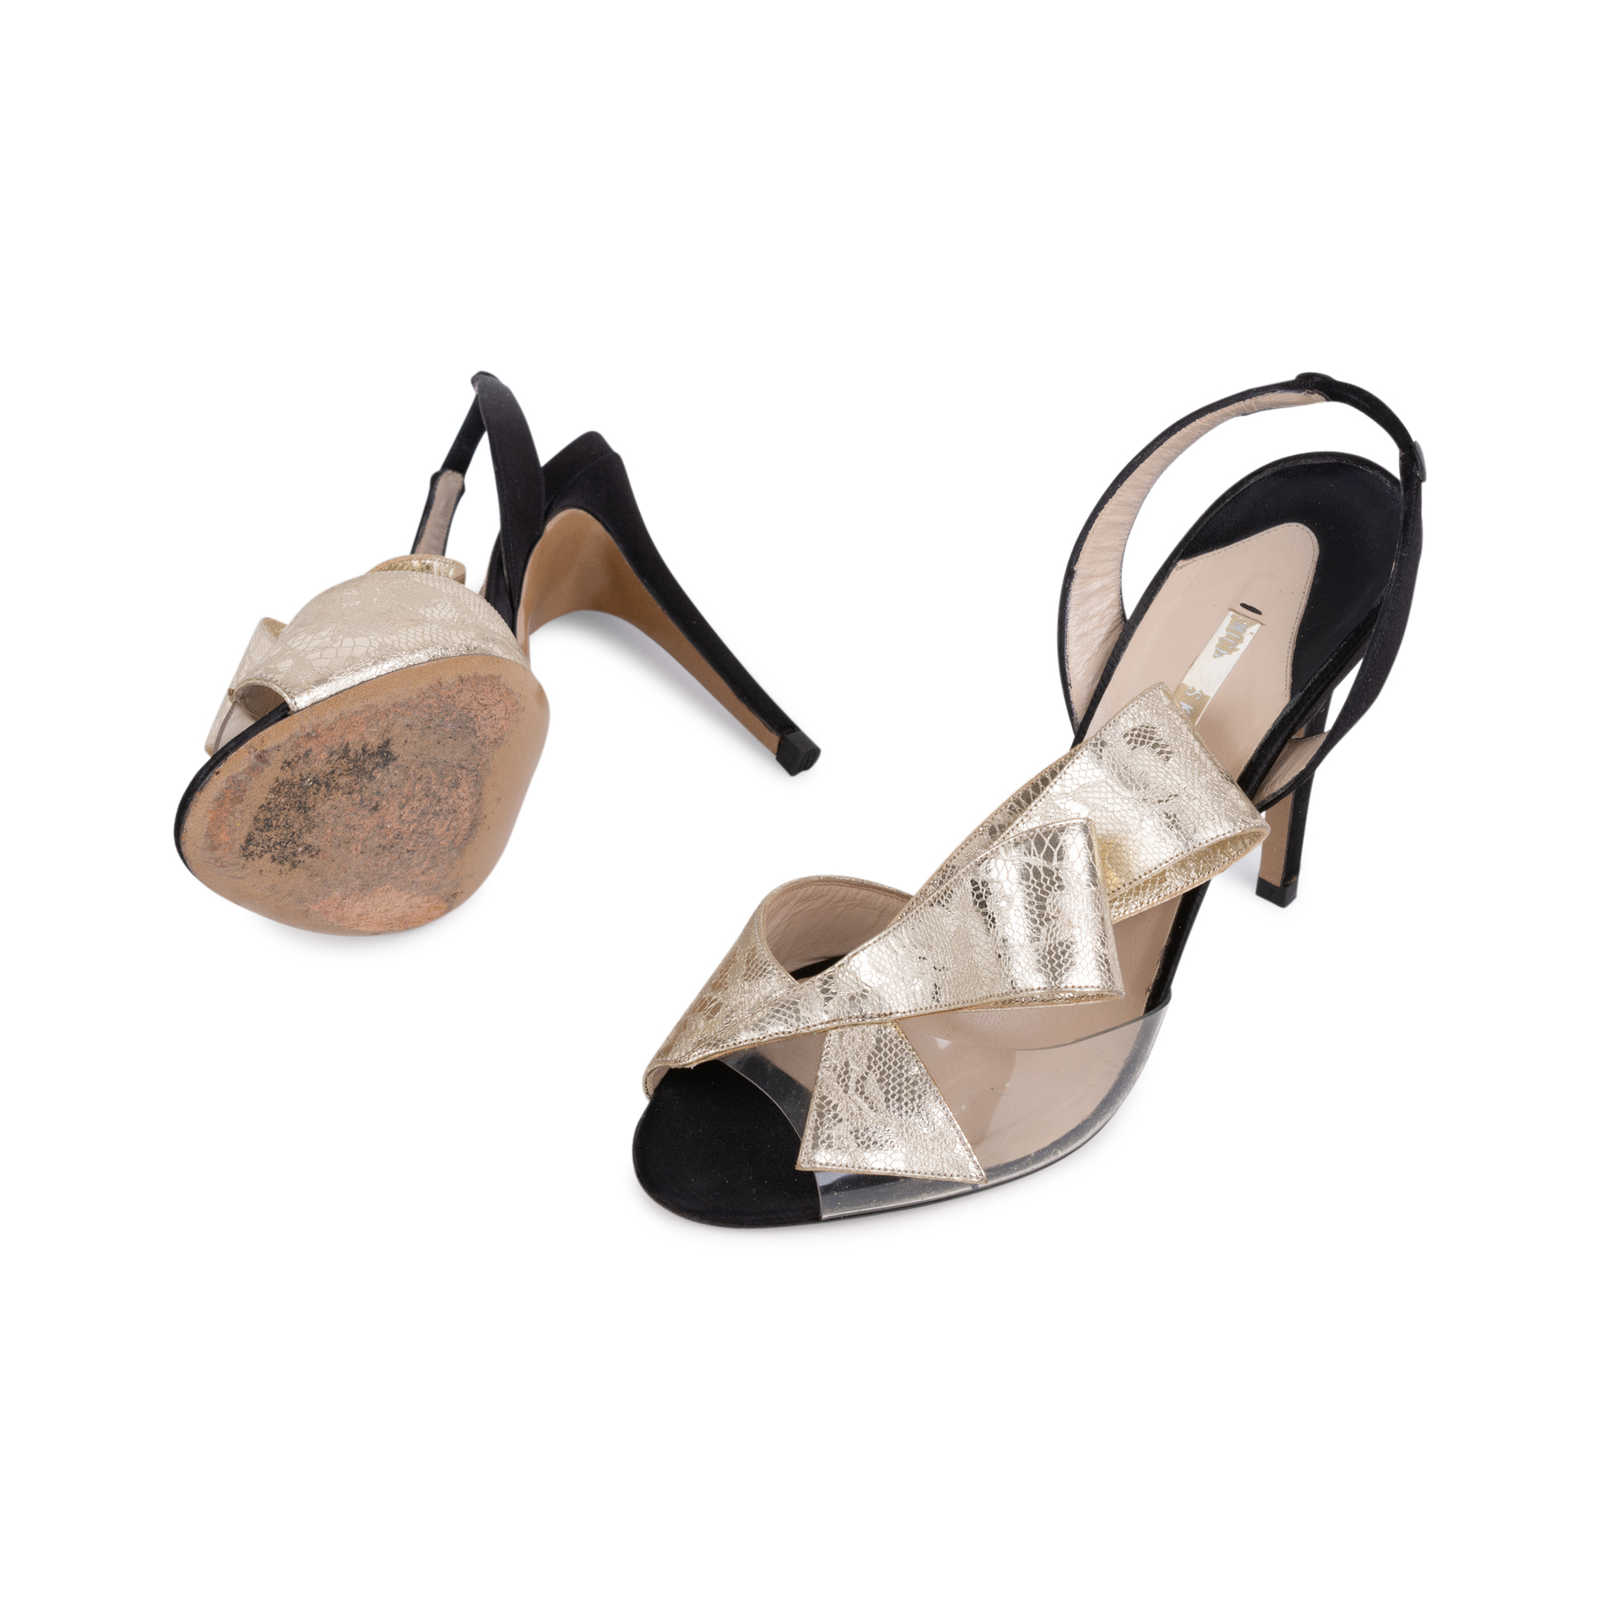 adfab884f72 ... Authentic Second Hand Nicholas Kirkwood Metallic Lace Bow Slingback  Sandals (PSS-515-00268 ...